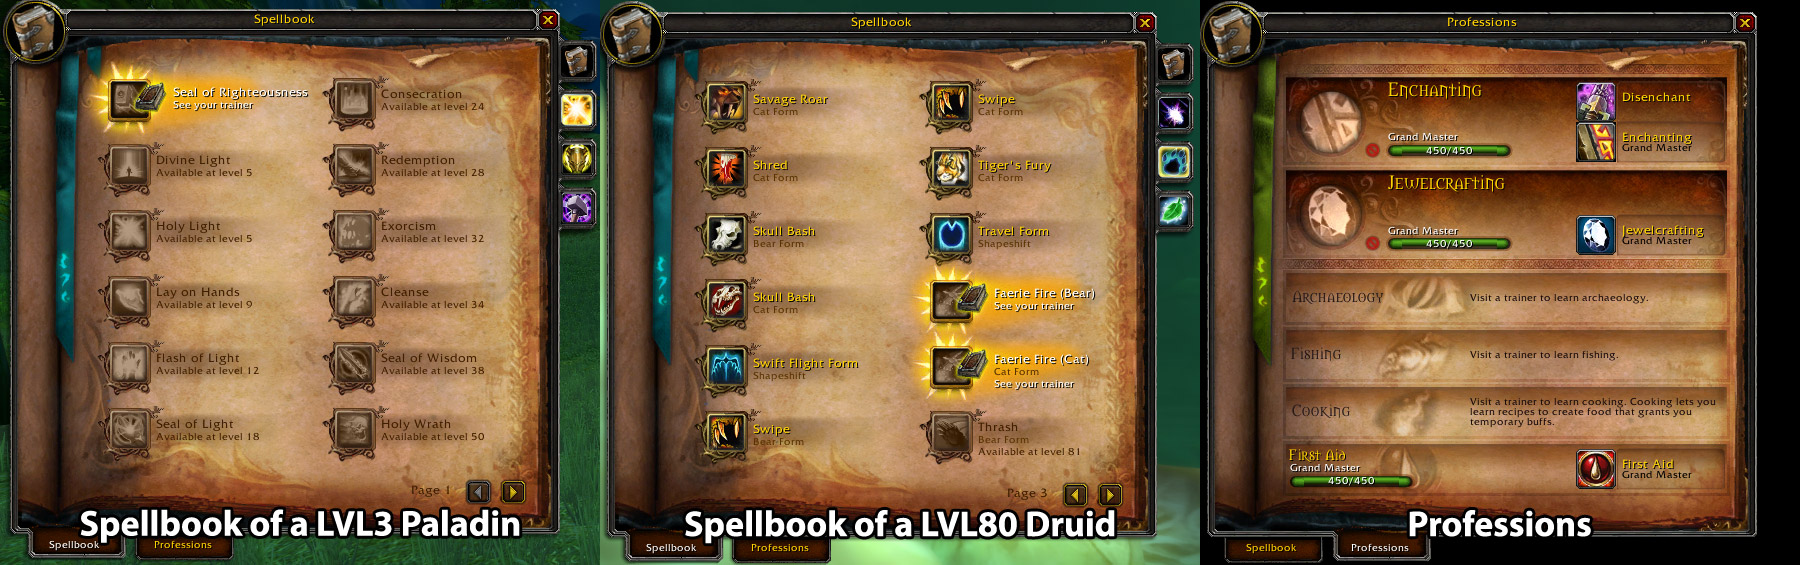 how to reset ui in wow